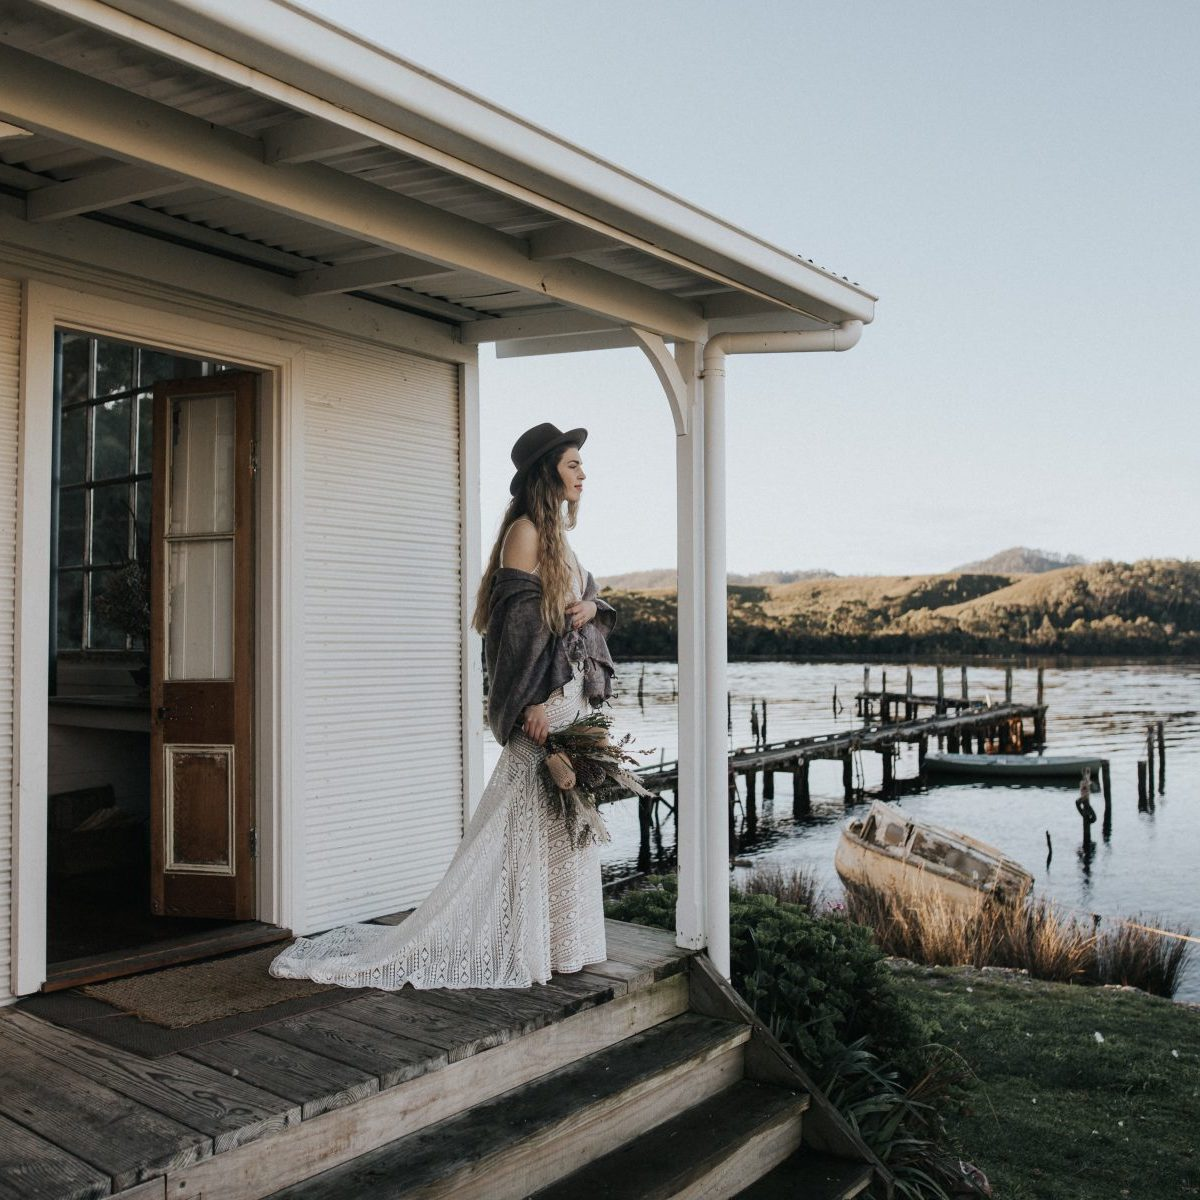 Bride in Tasmanian wooden house with view to river